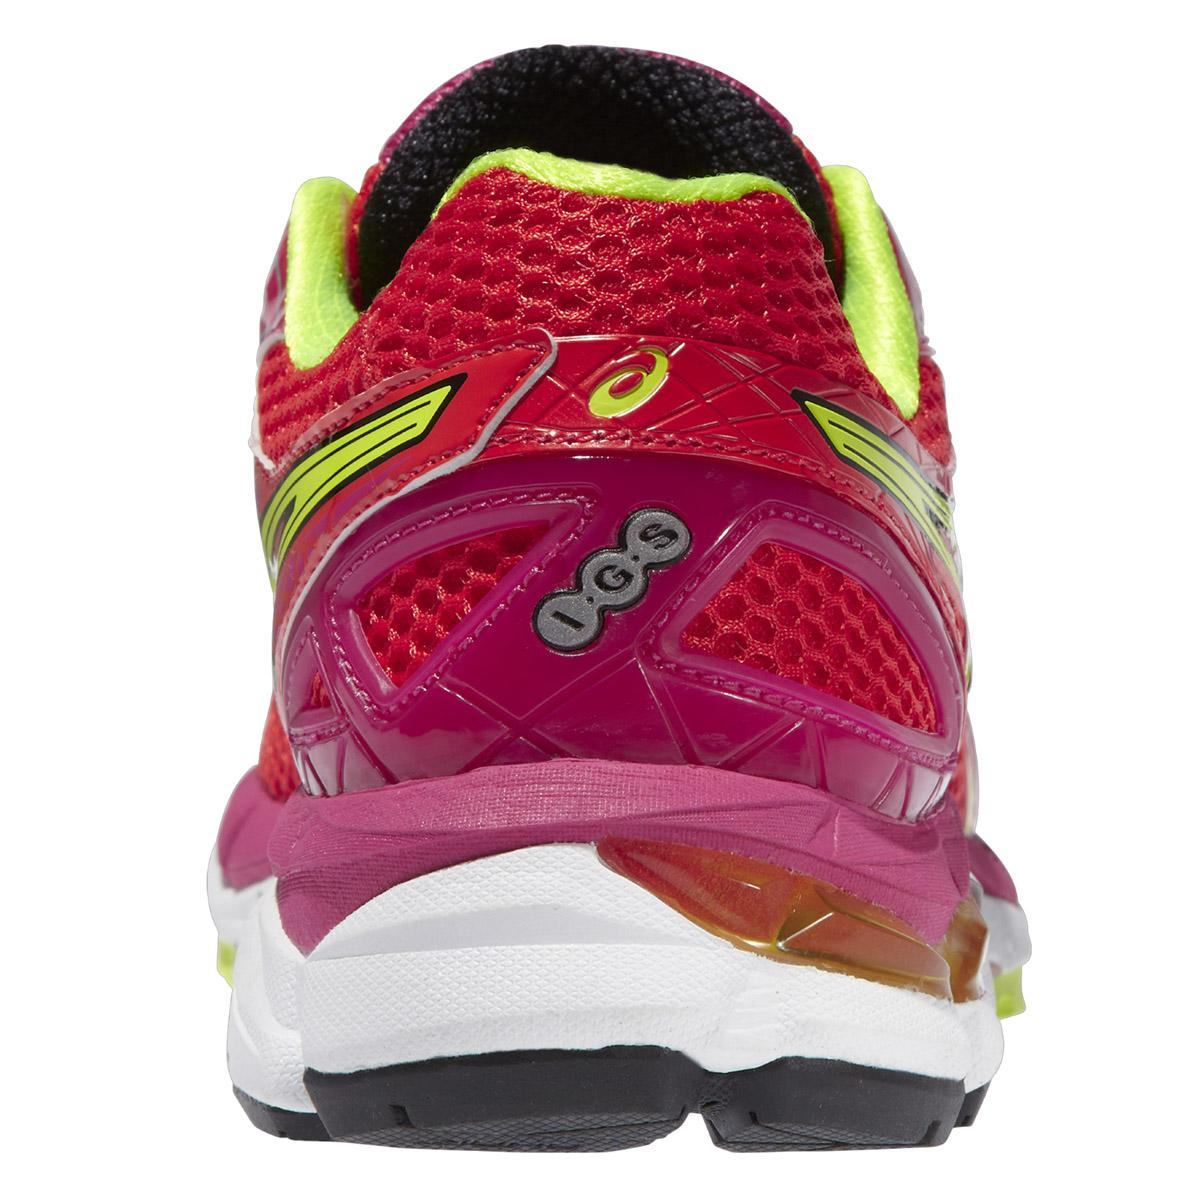 6d4655d5f09 Redyellowpink Asics Womens 3 2000 Shoes Gt Running YgwrqdY